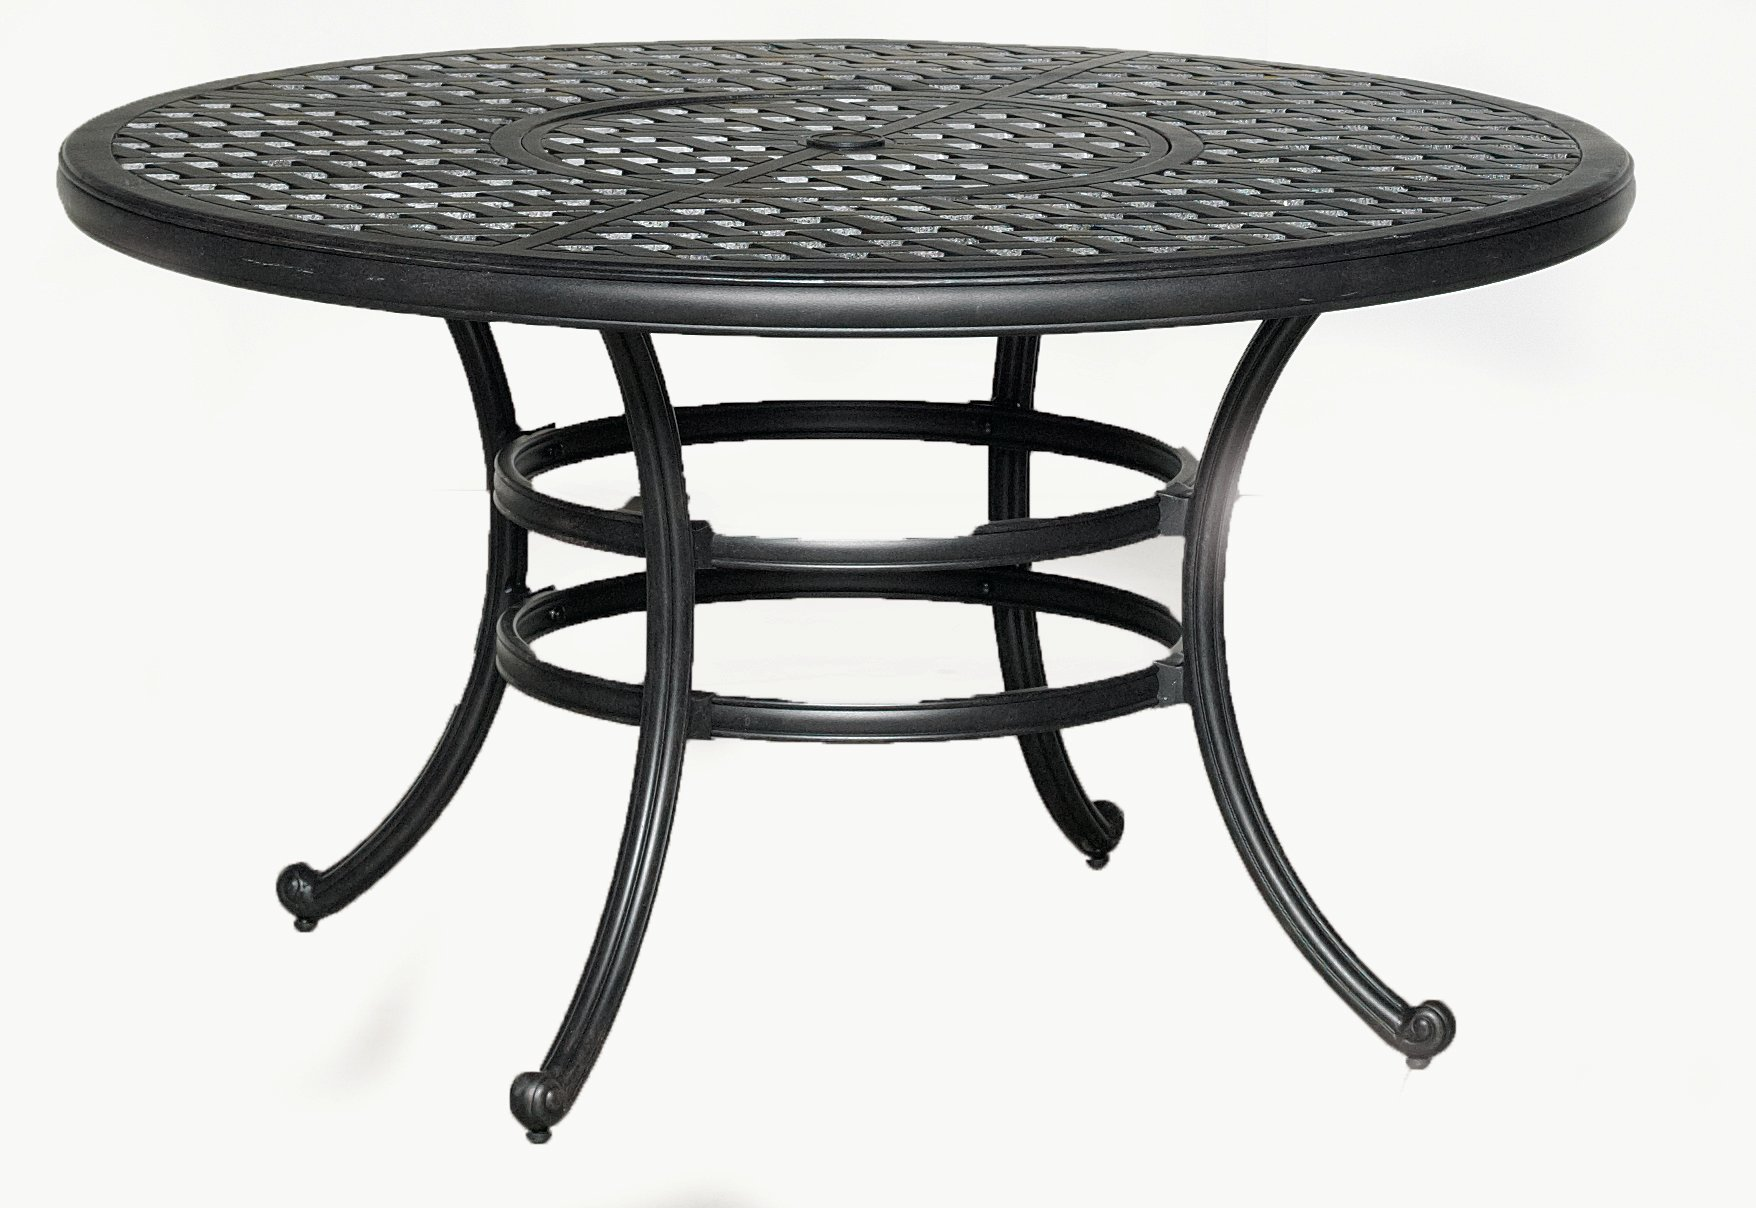 5 Piece Outdoor Patio Dining Set Moab Rc Willey